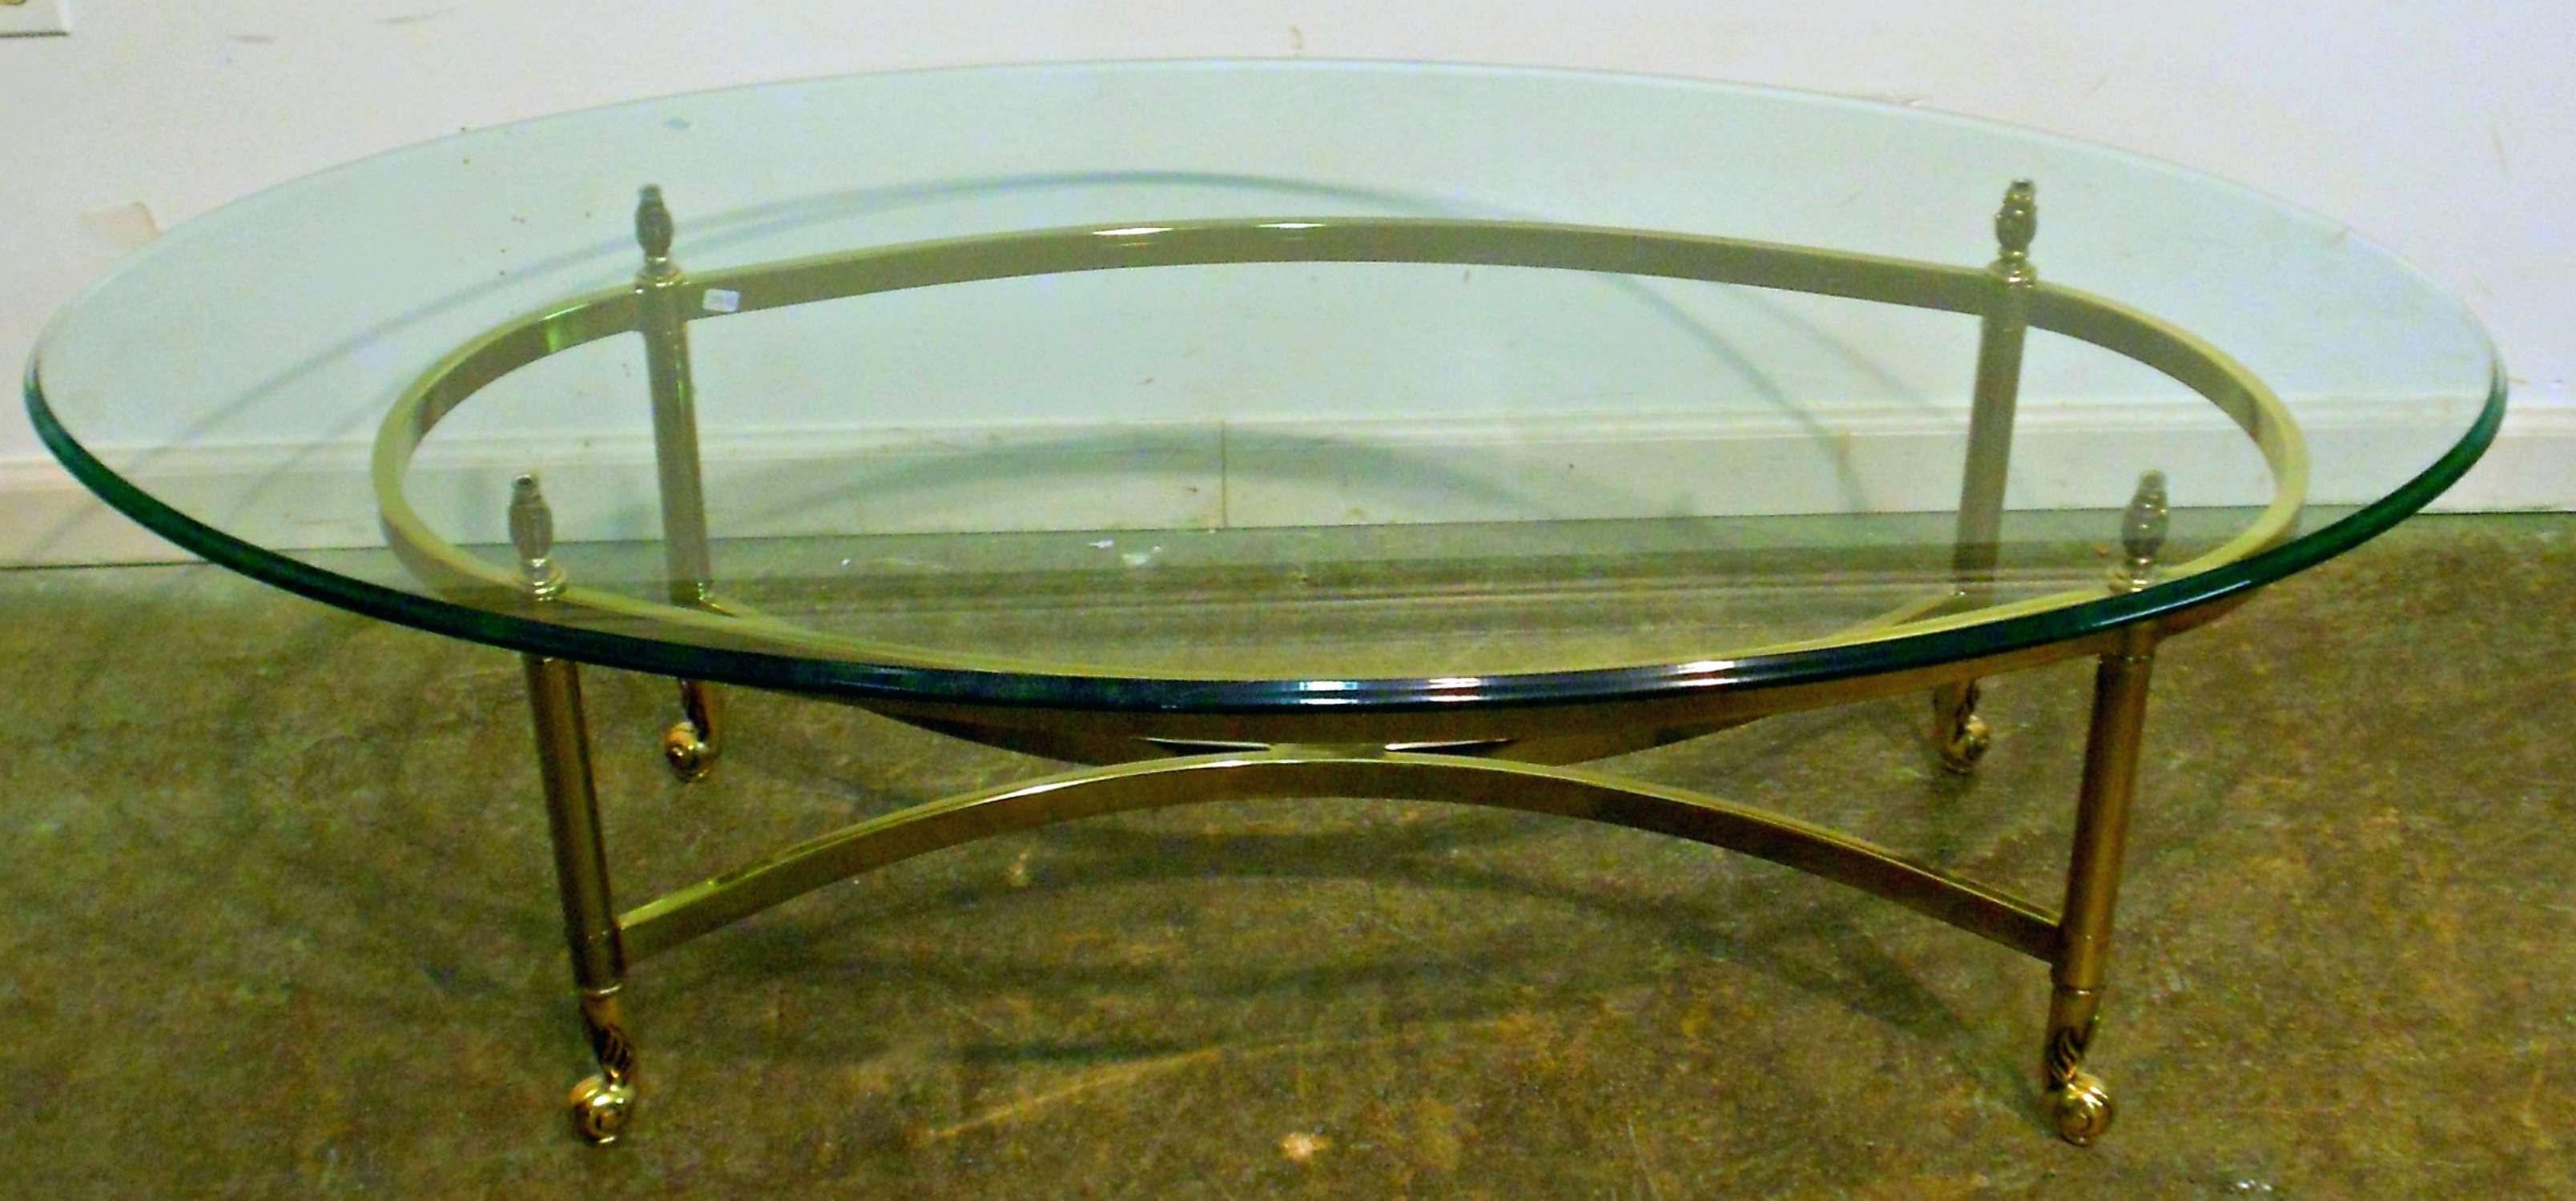 2018 Oval Shaped Glass Coffee Tables For Coffee Tables : Australia Brass And Glass Oval Coffee Table Small (View 16 of 20)